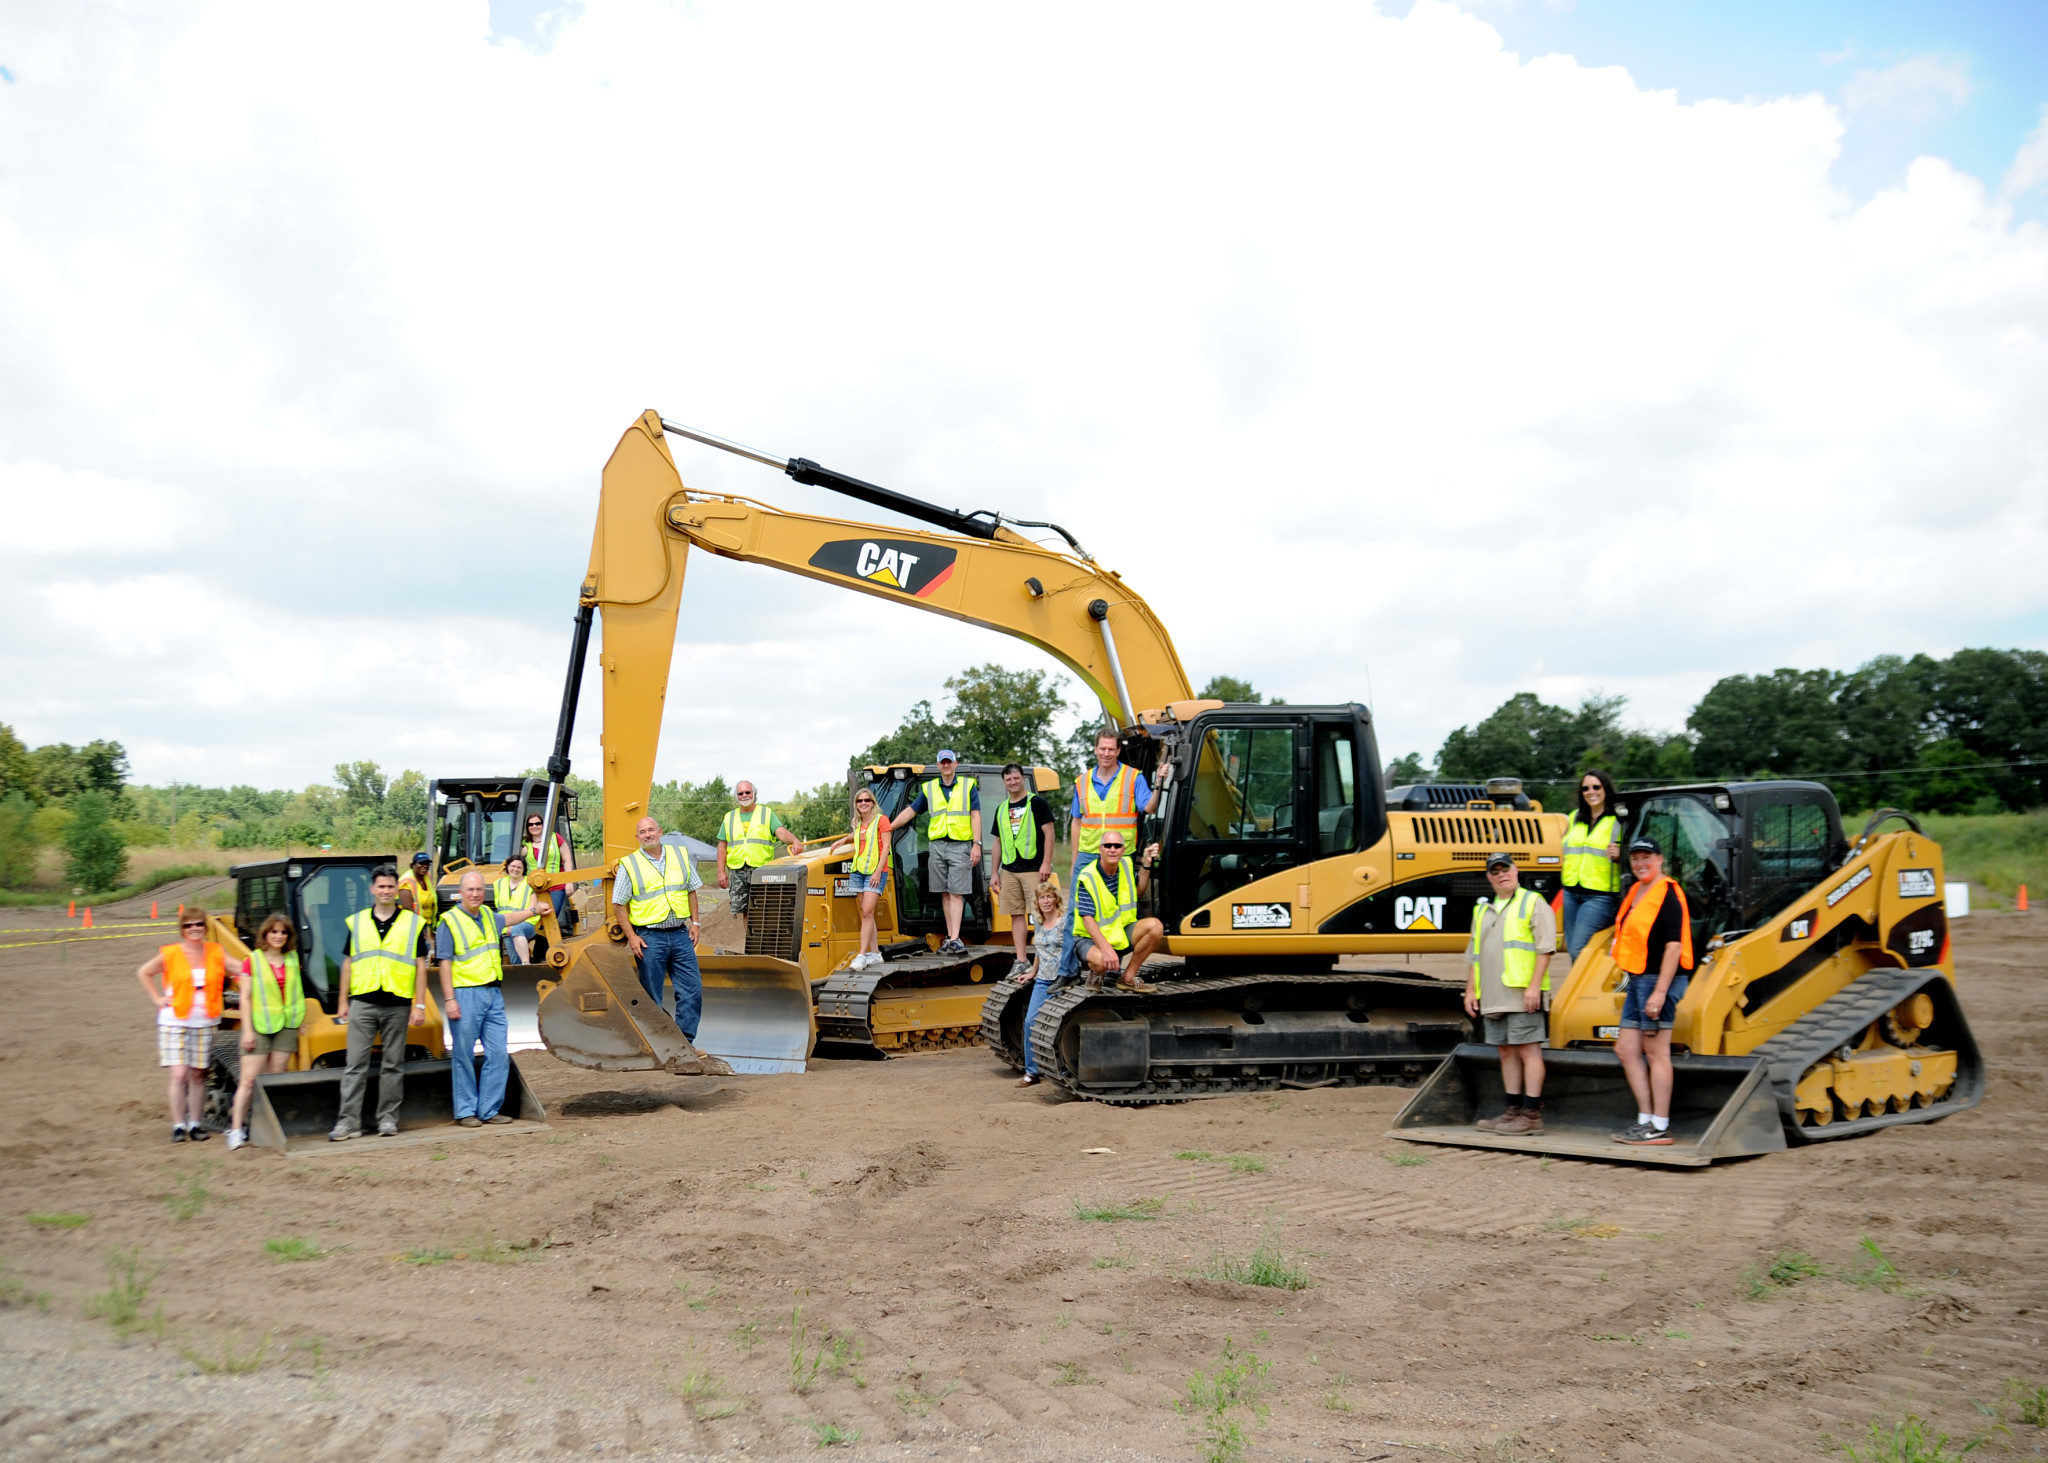 Wanna ride a bulldozer? Excavator? Hastings business can help